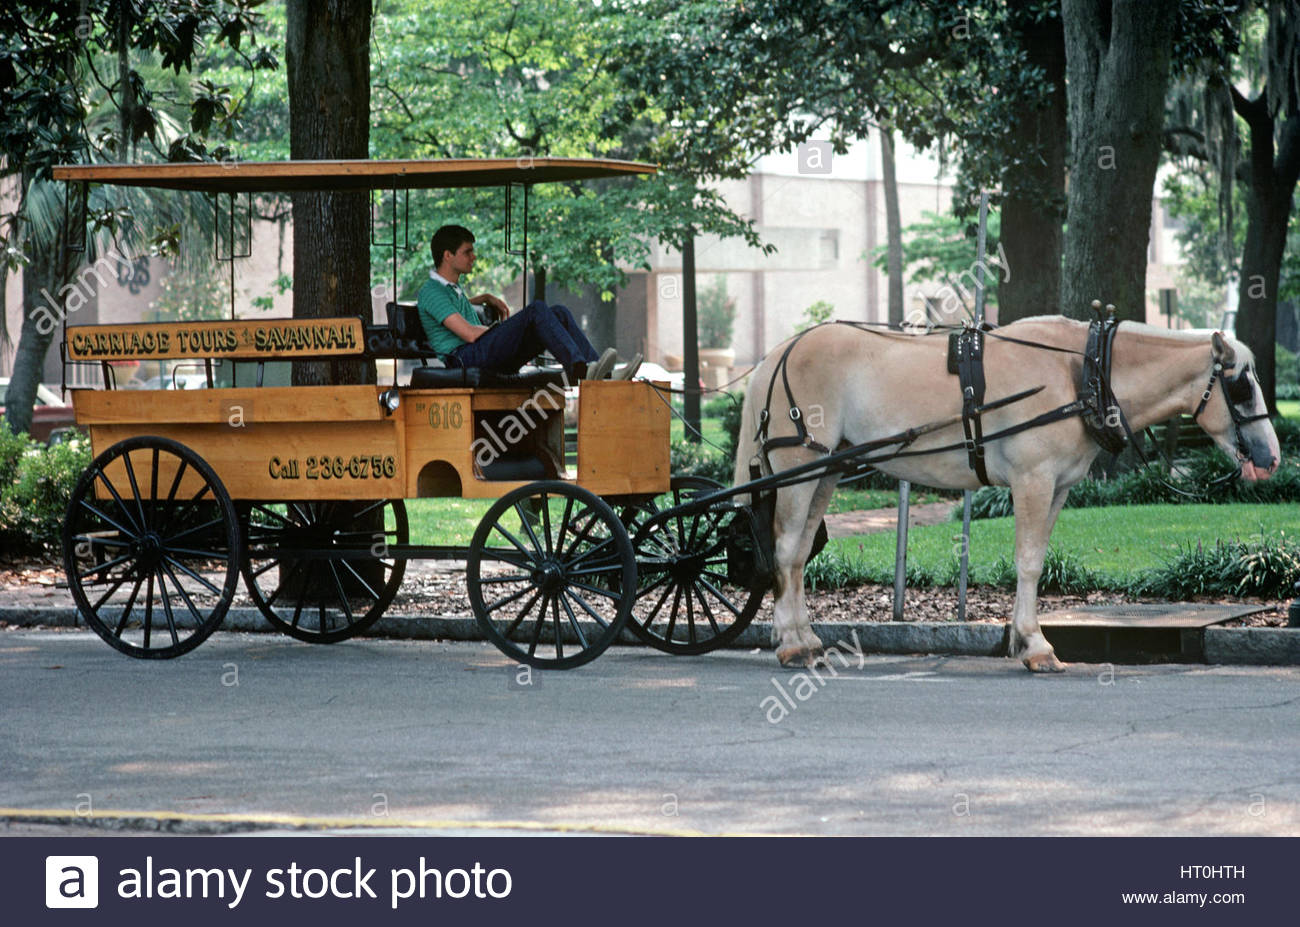 Savannah Georgia Horse Carriage Stock Photos Savannah Georgia